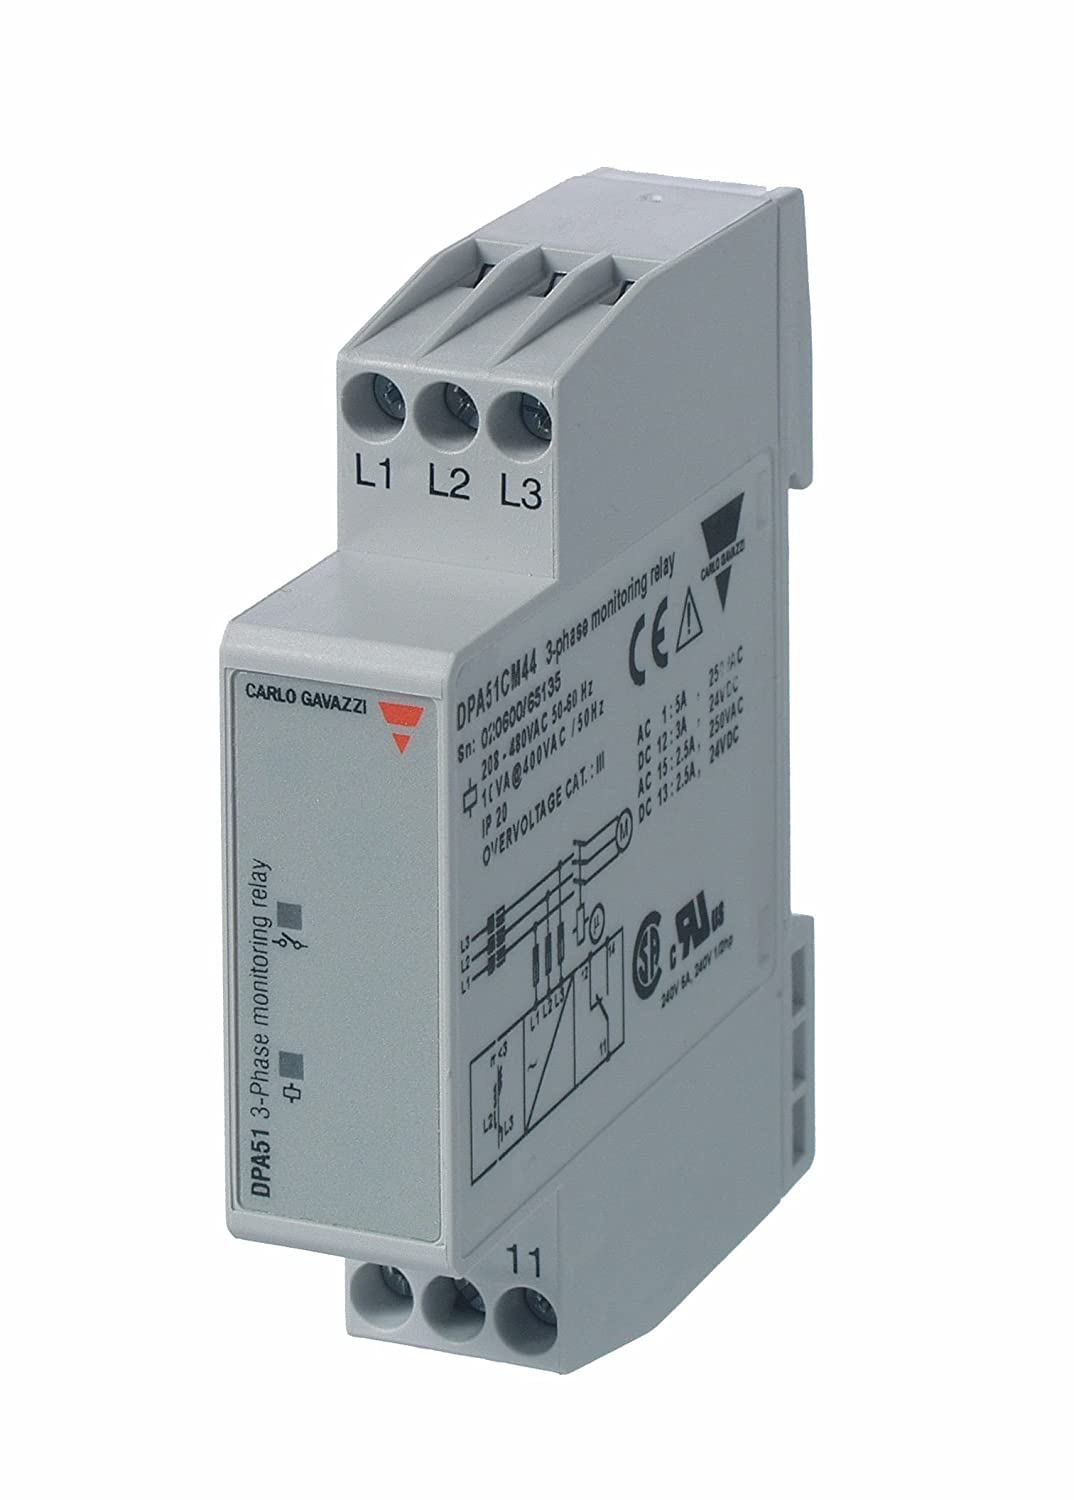 DPA51CM44 CARLO GAVAZZI MONITORING RELAY 3-PHASE SEQUENCE AND PHASE LOSS TYPE DPA51